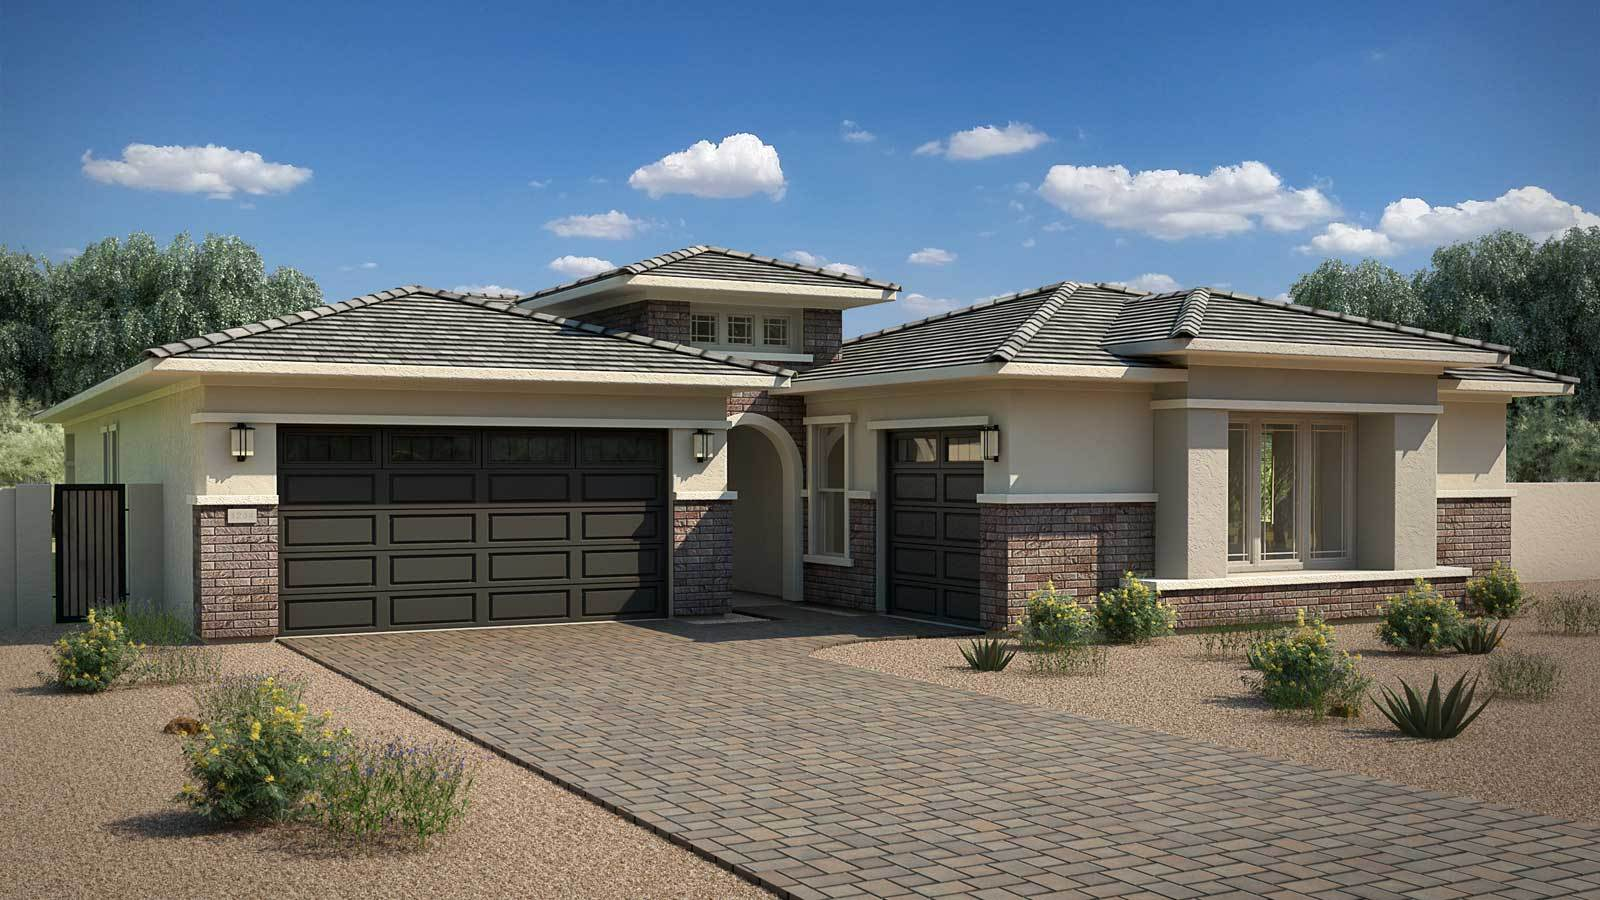 New construction floor plans in chandler heights az for Building a house in arizona